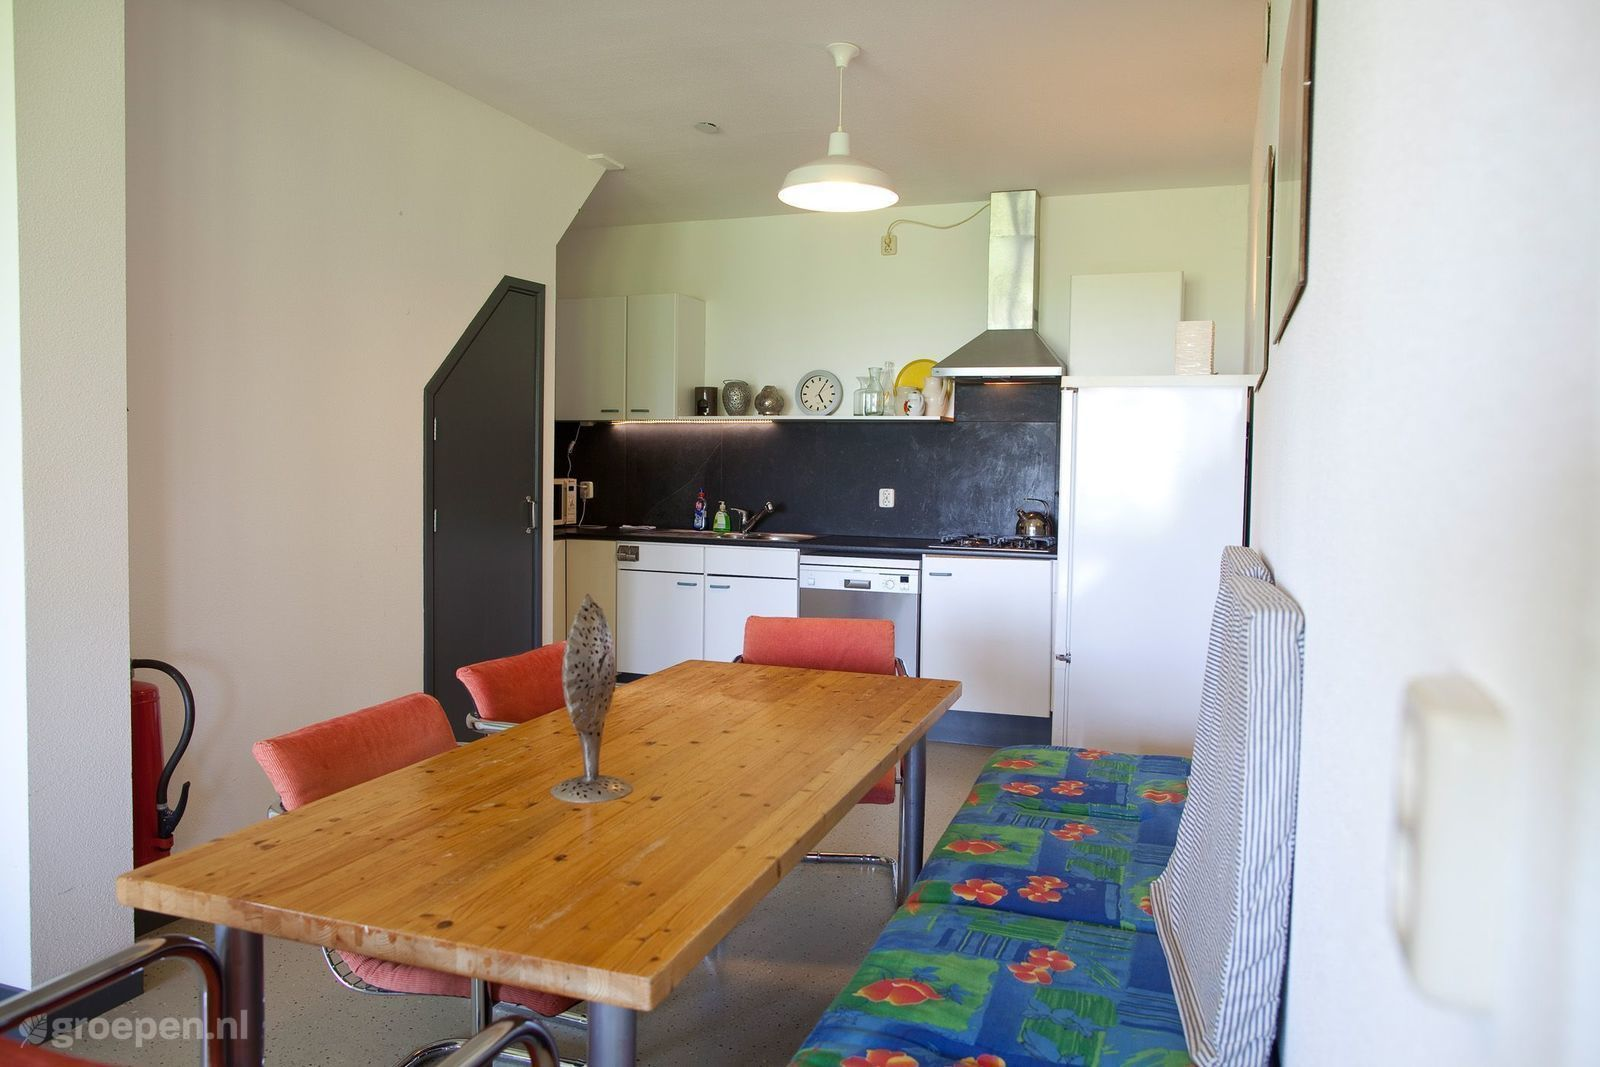 Group accommodation Waarland